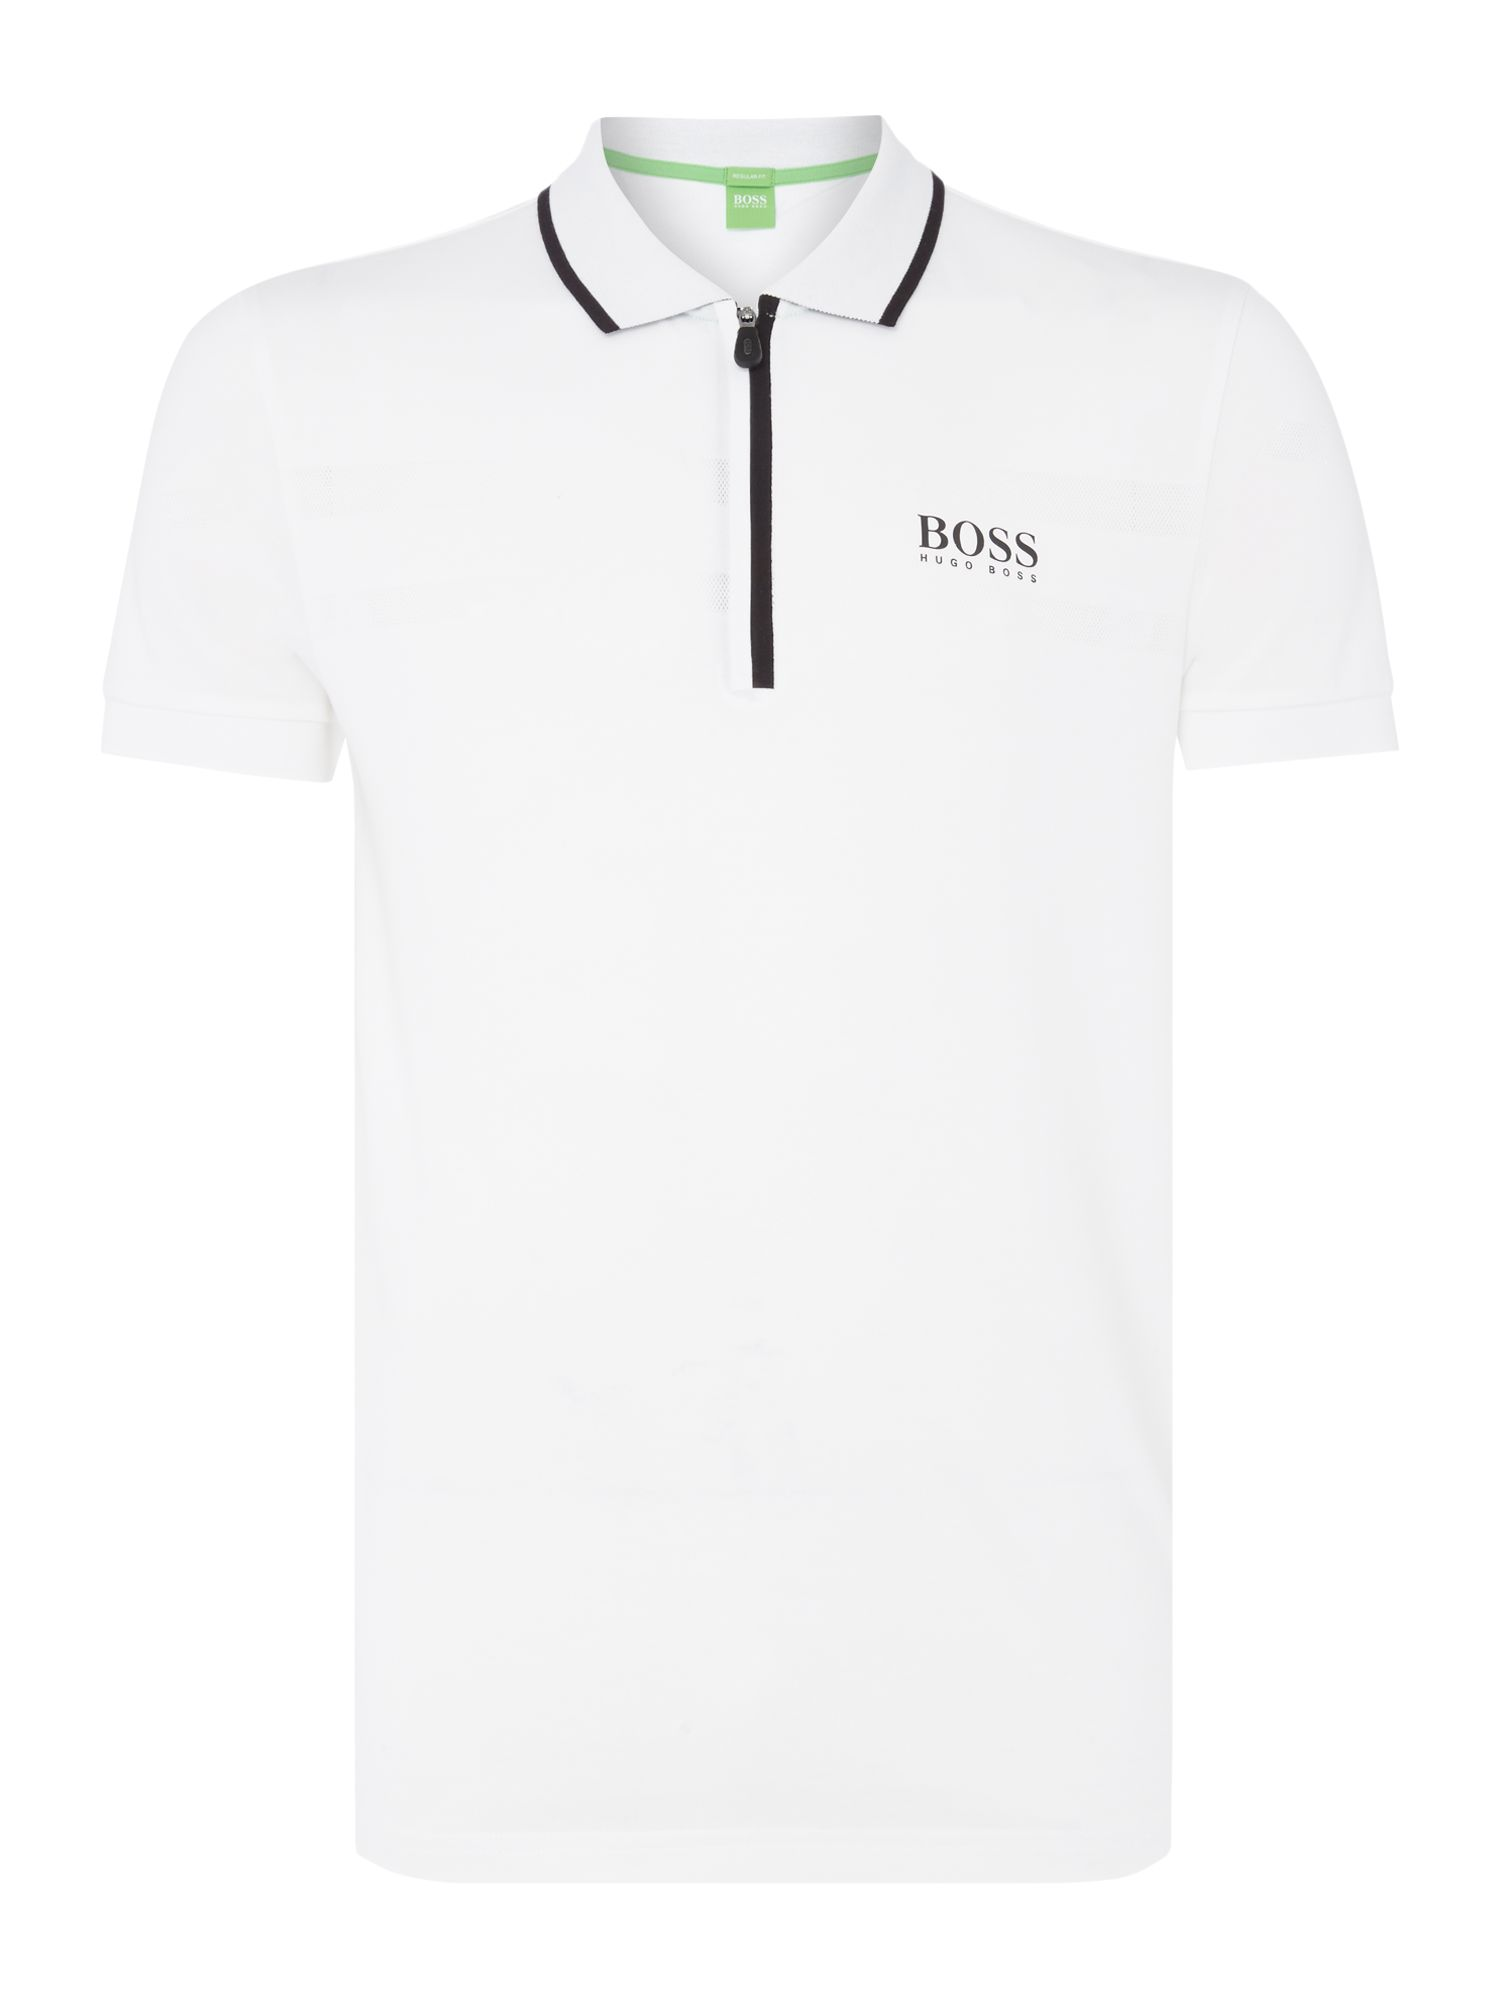 Mens Hugo Boss Golf pronghorn pro zip neck polo shirt White